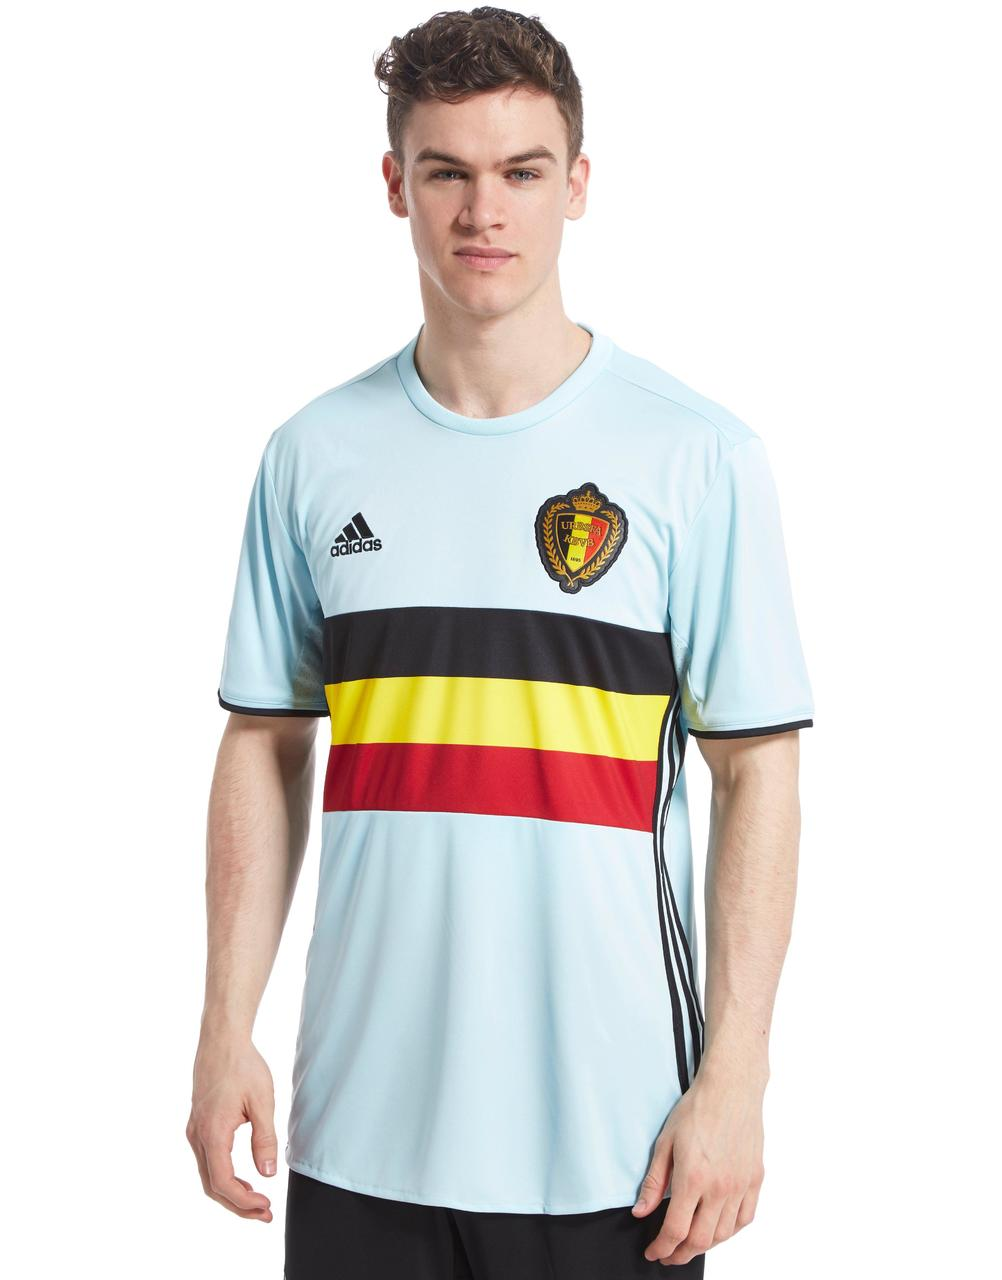 f489346d8 Click to enlarge image belgium-euro-2016-adidas-away-football- ...